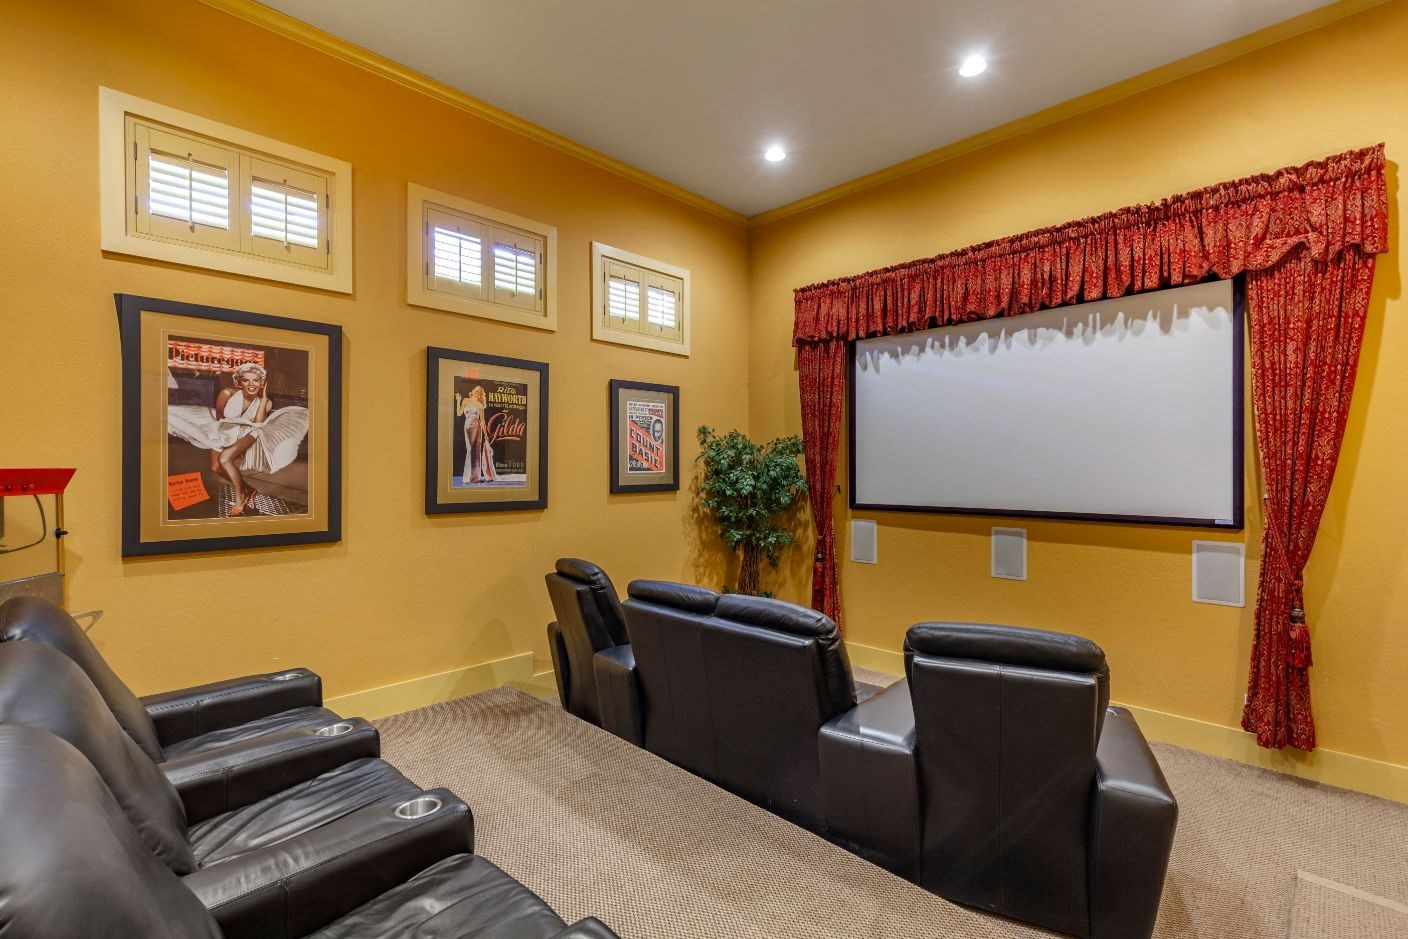 Theater room with black leather recliners and screen projector mounted on a yellow wall